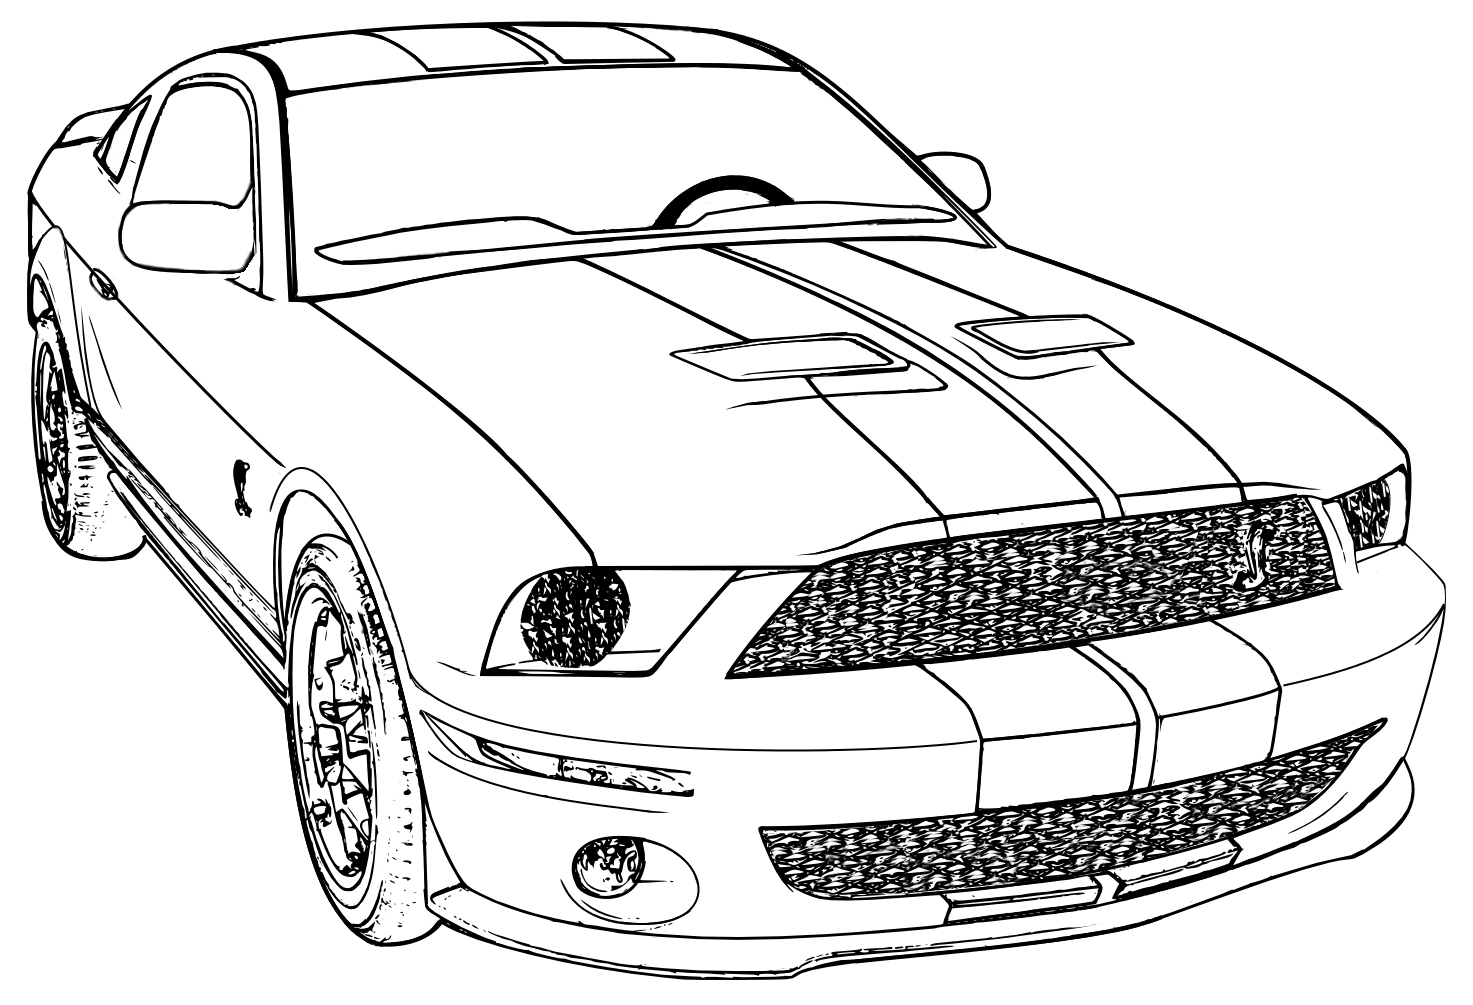 mustang race car coloring pages printable mustang car car coloring page ford mustang race pages car coloring mustang